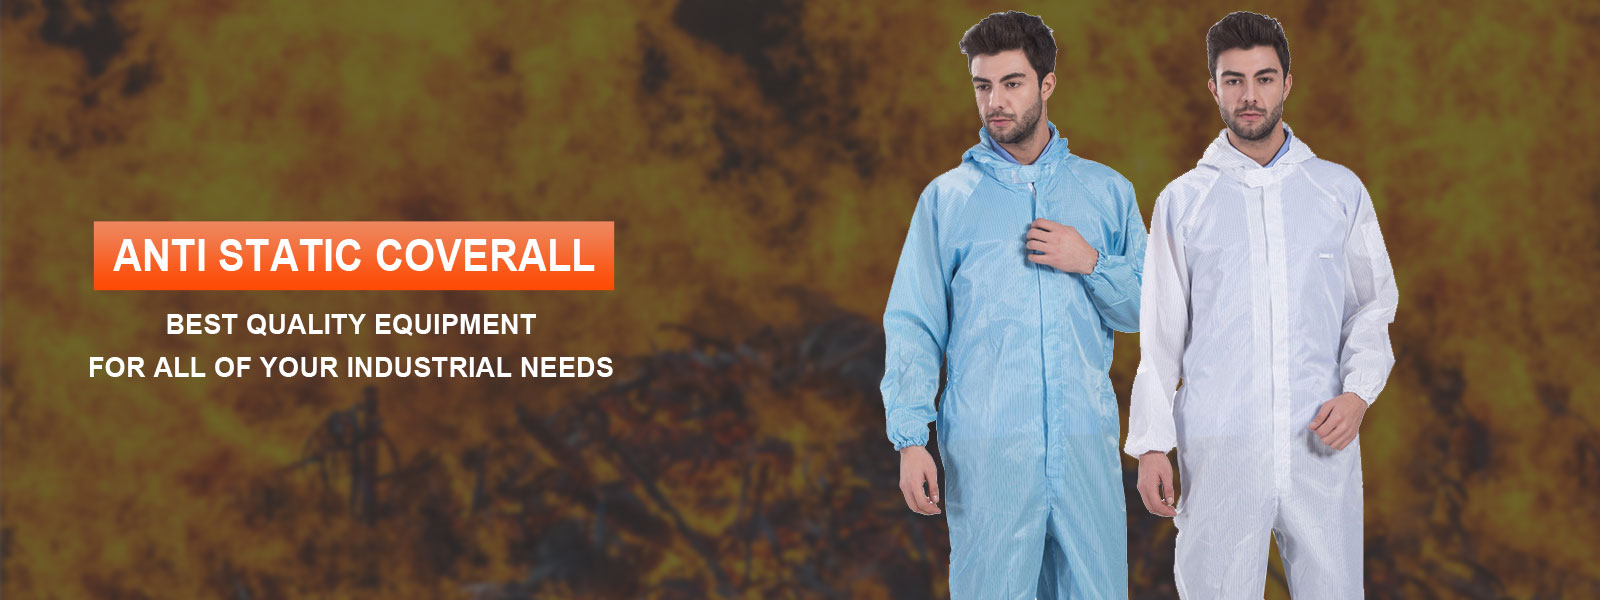 Anti Static Coverall Manufacturers in Ecuador